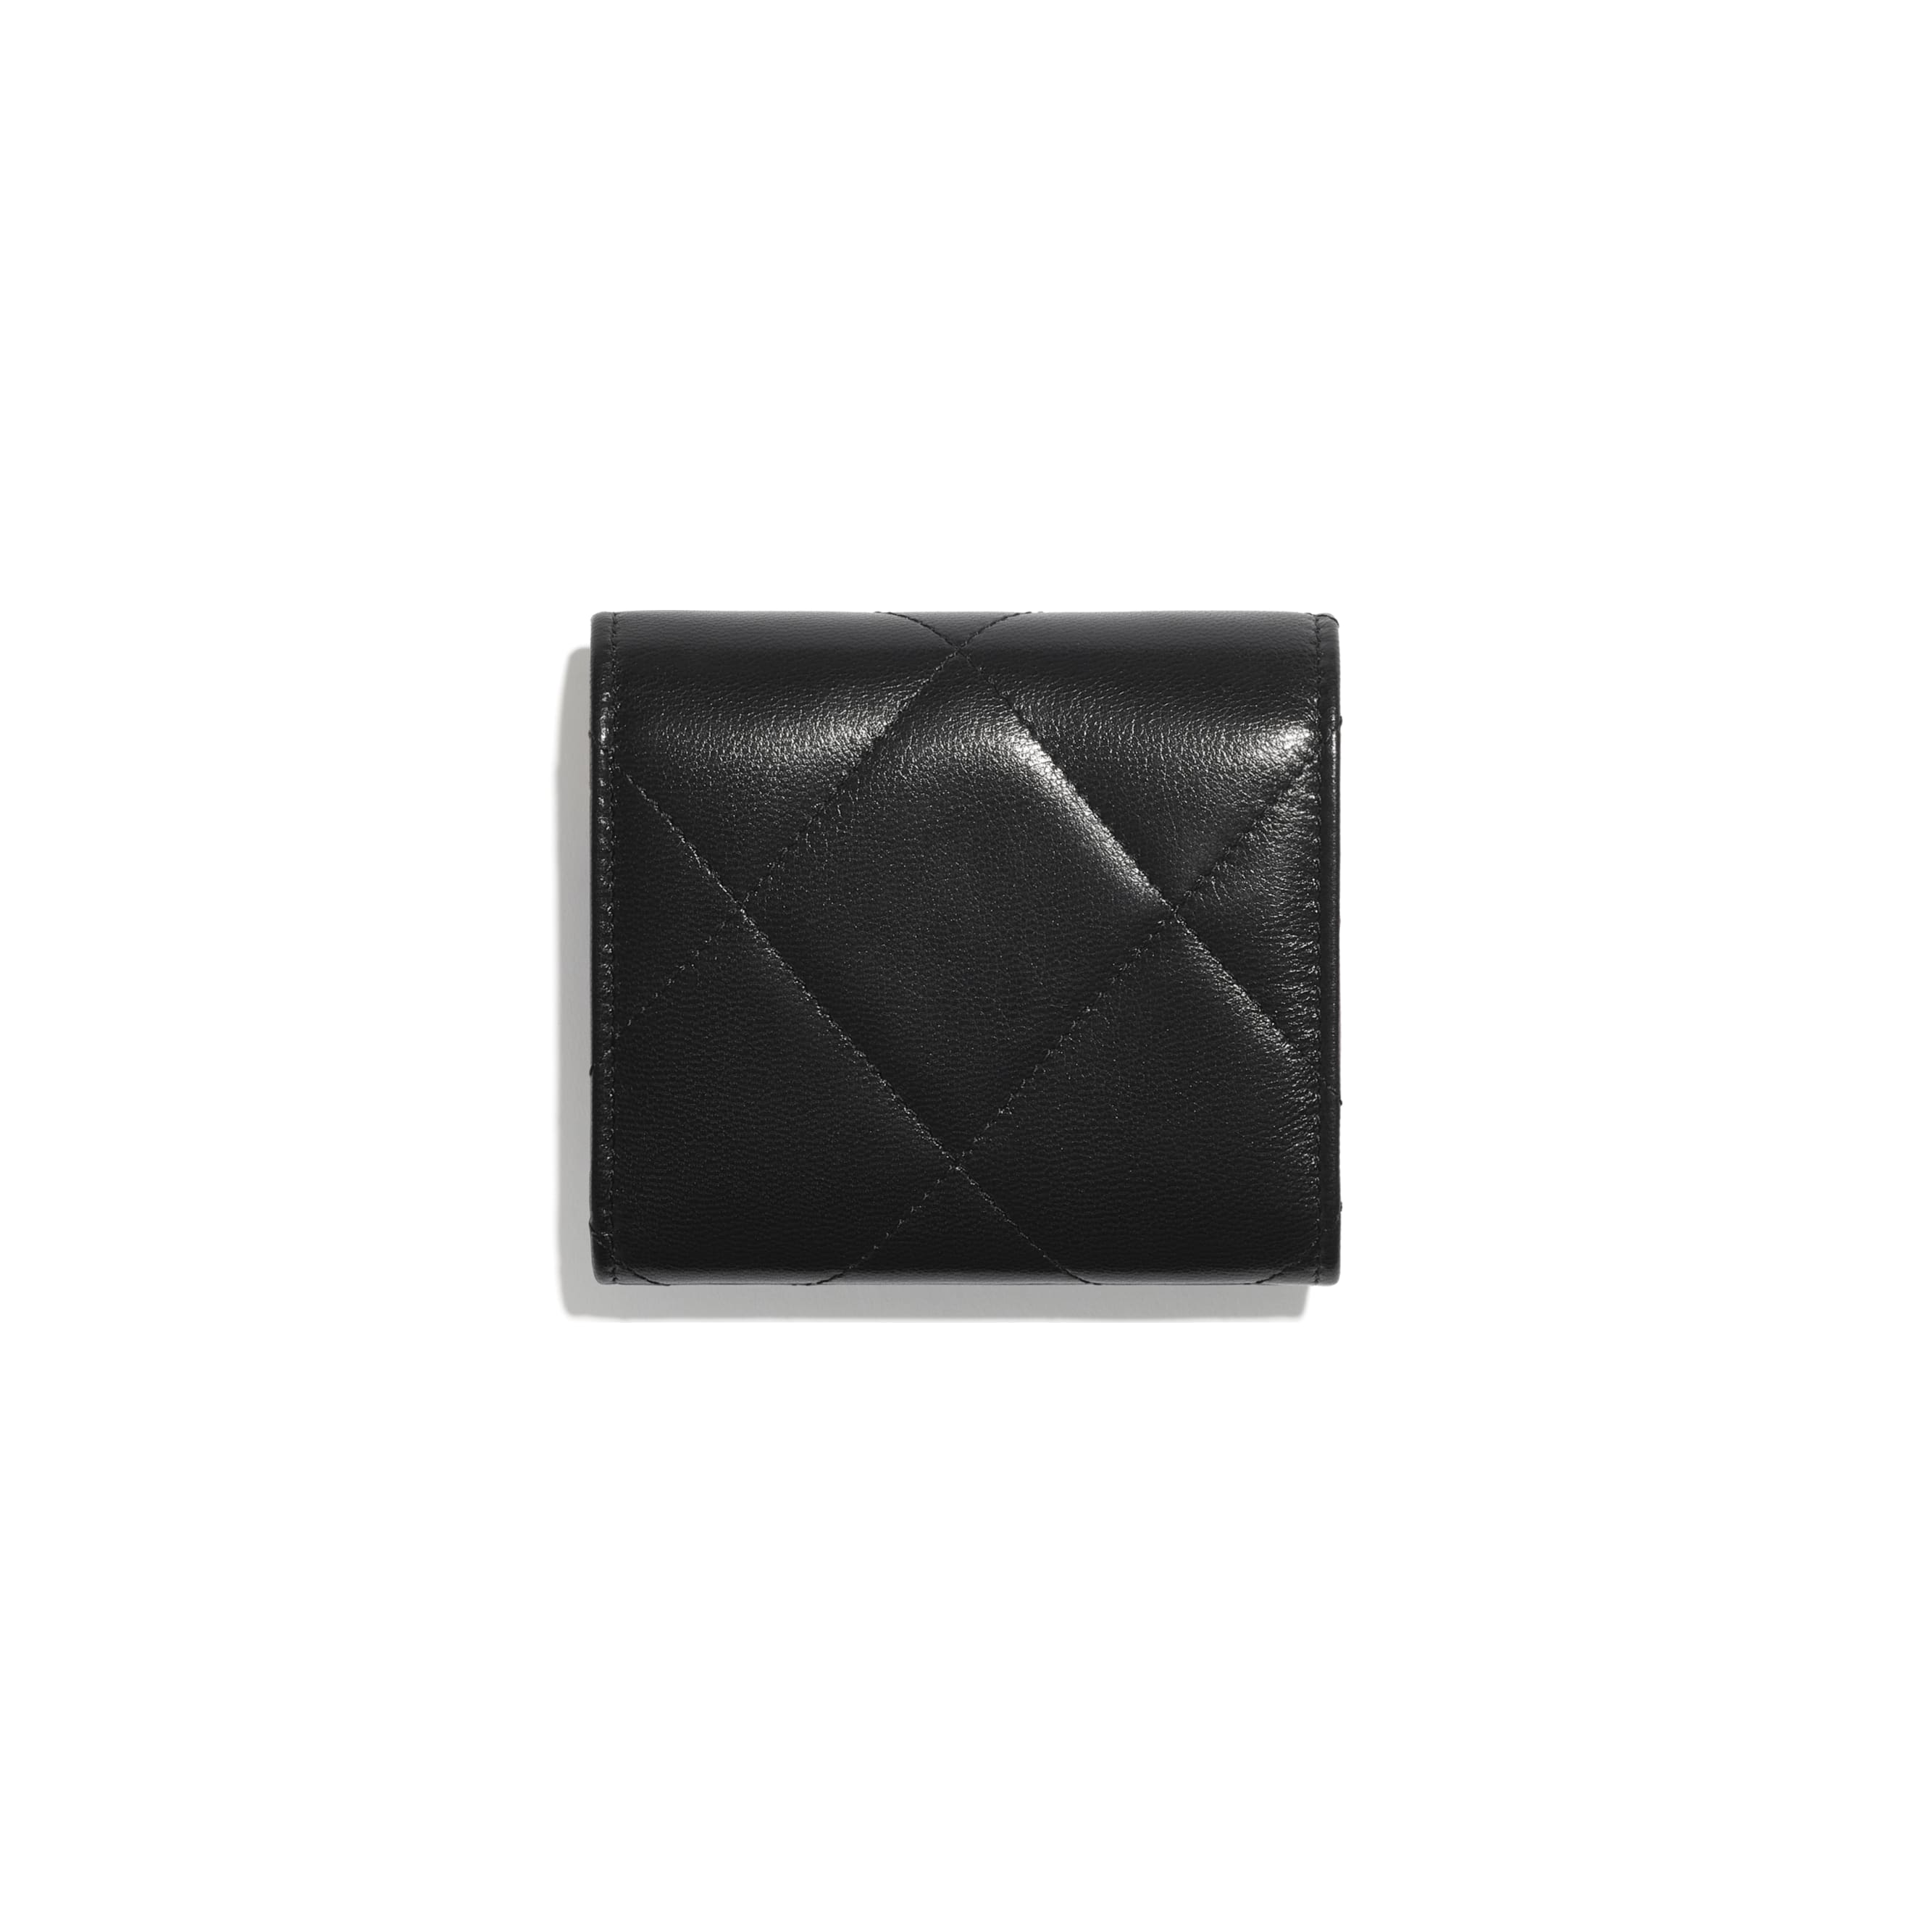 CHANEL 19 Small Flap Wallet - Black - Shiny Goatskin & Gold-Tone Metal - CHANEL - Alternative view - see standard sized version